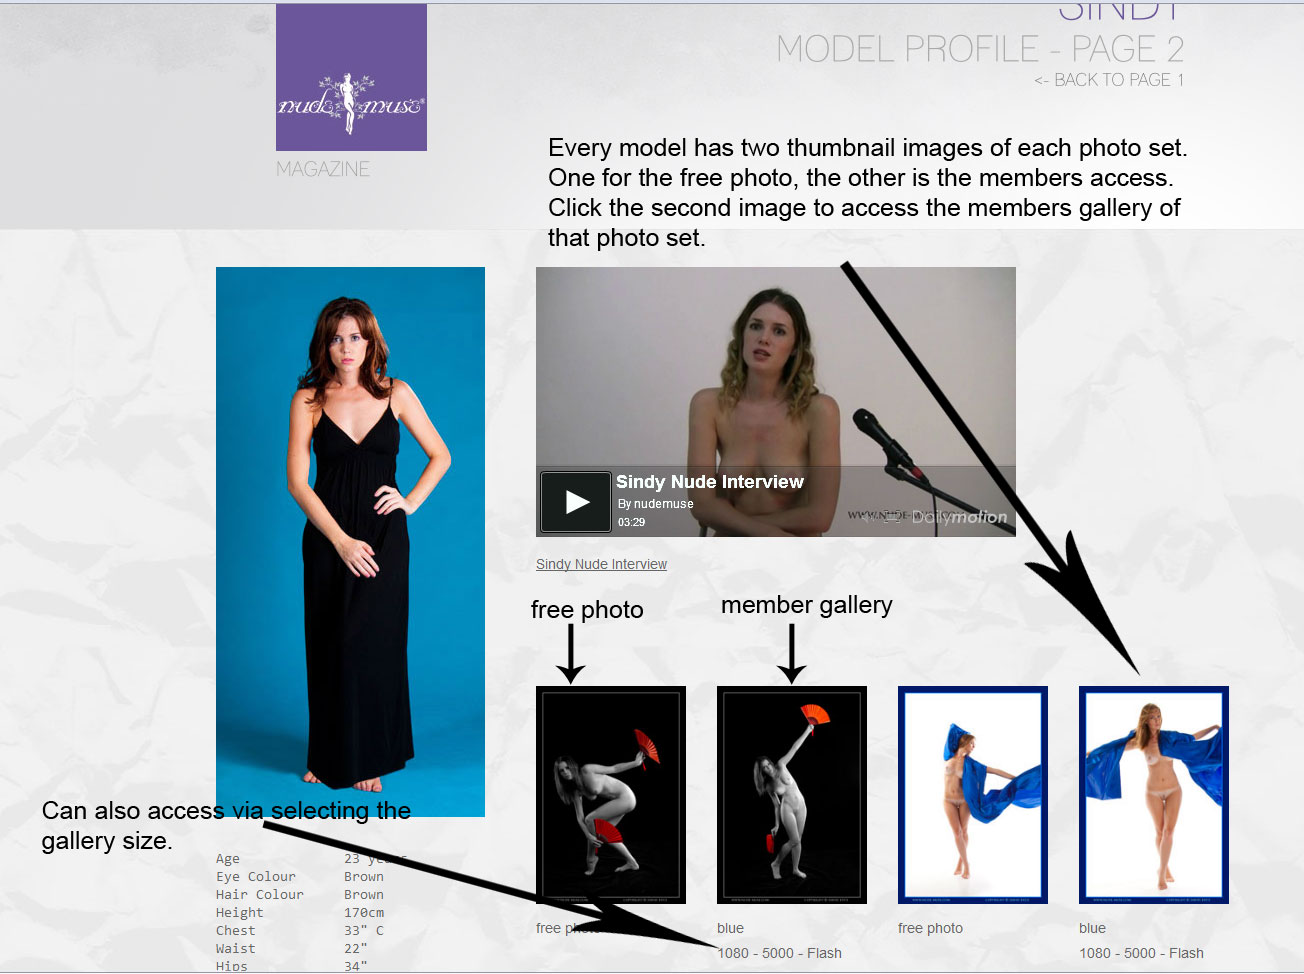 models profile page